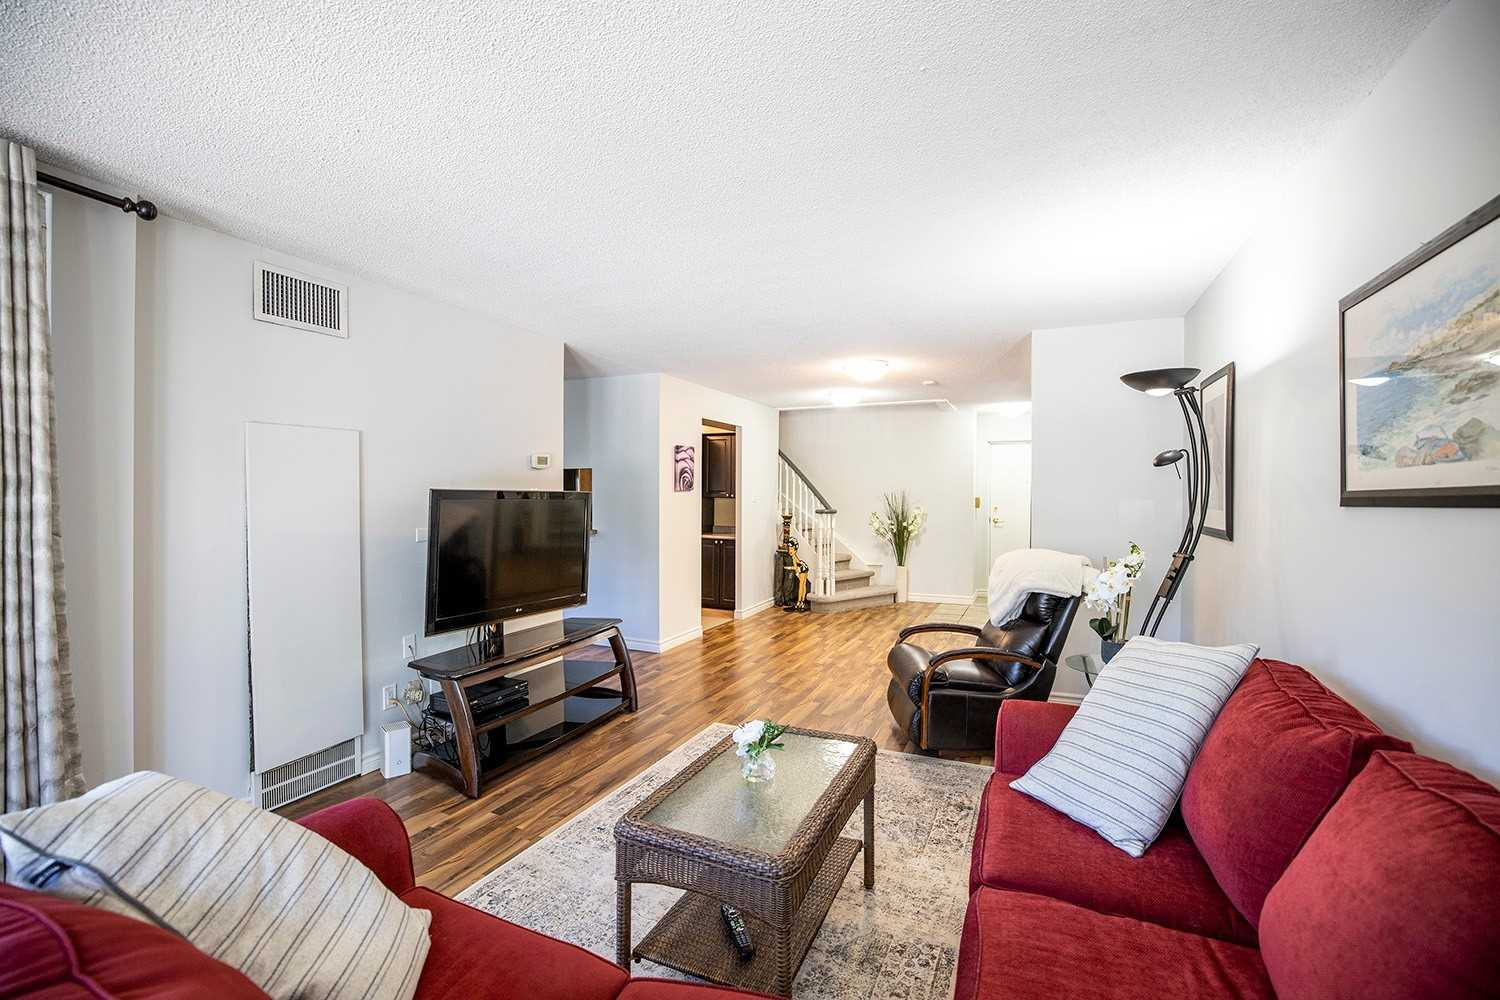 Image 15 of 20 showing inside of 2 Bedroom Condo Apt 2-Storey for Sale at 25 Cumberland Lane Unit# 112, Ajax L1S7K1